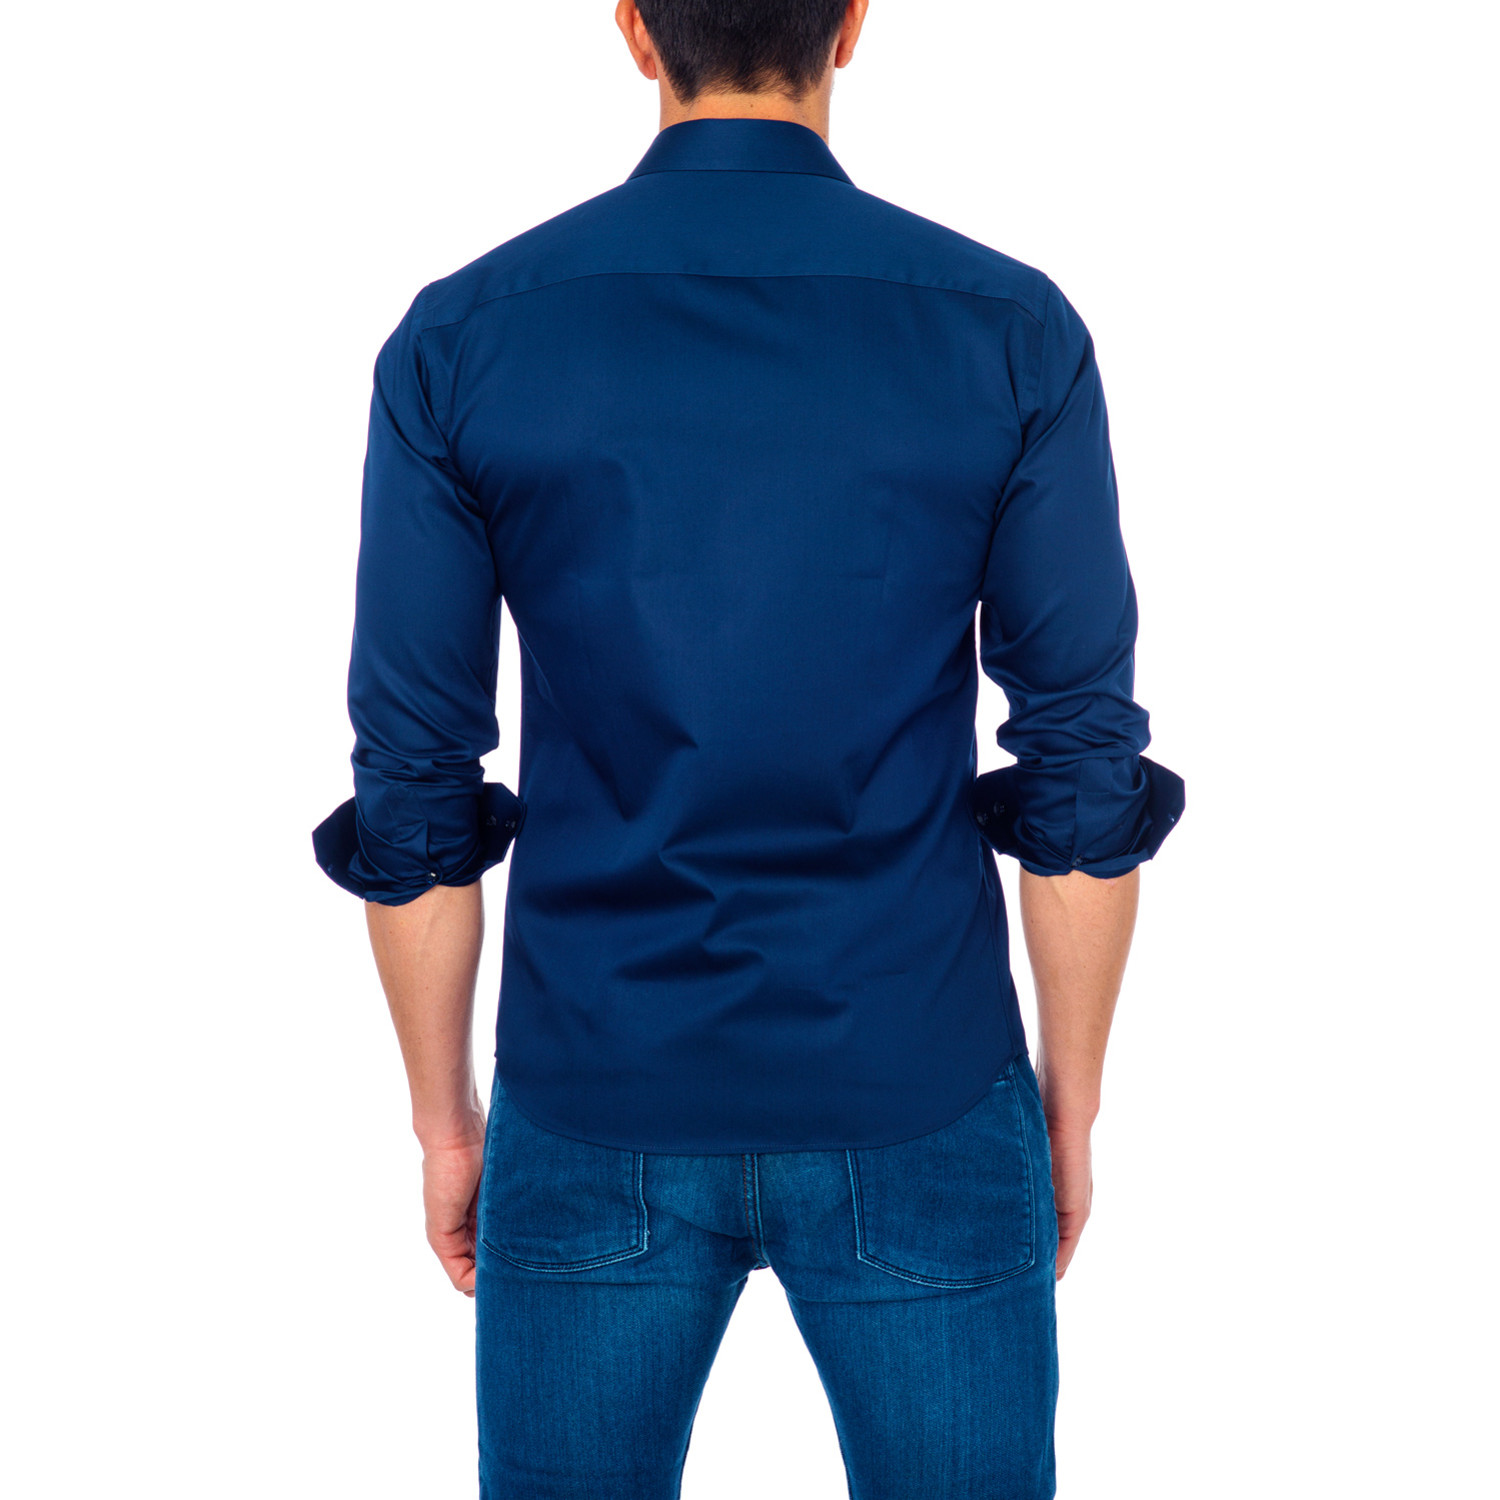 Solid Button Up Shirt Navy S Unsimply Stitched